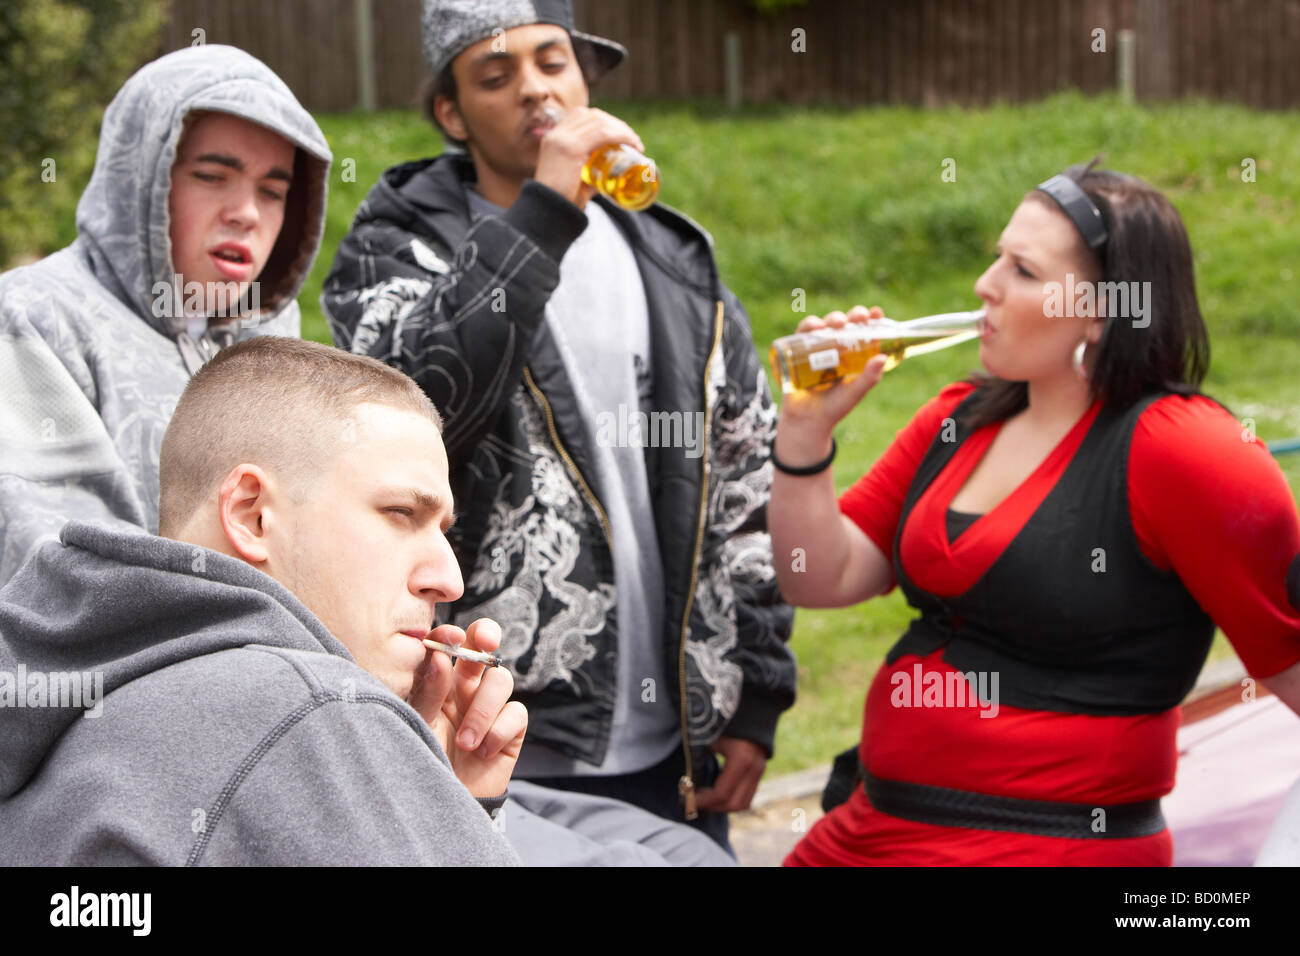 Gang Of Youths Sitting On Cars - Stock Image